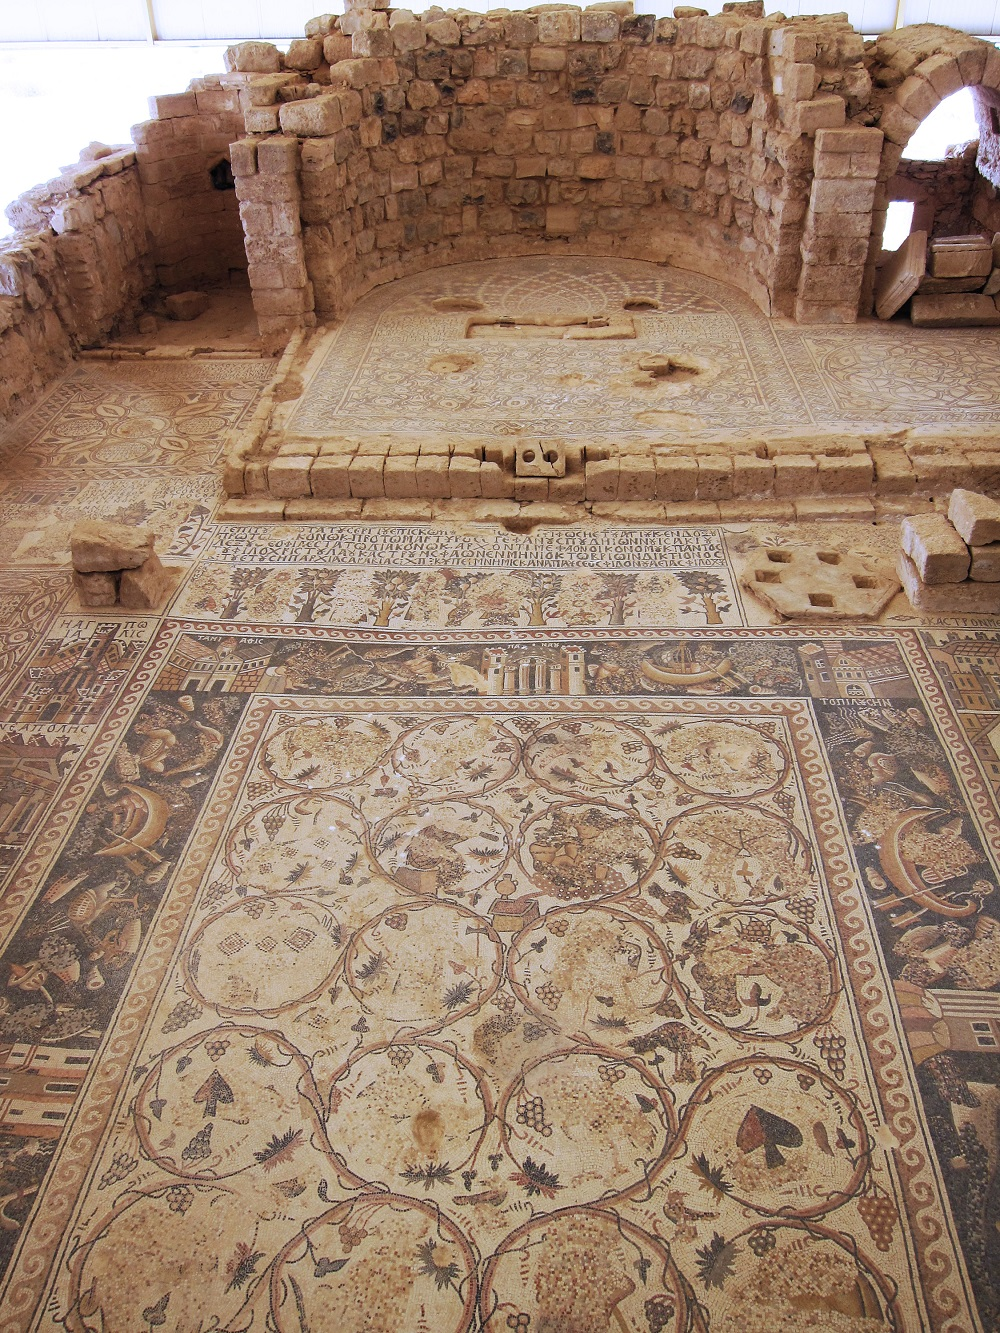 Early Islamic-period mosaic with elaborate floral and Nilotic mosaics | Church of St. Stephen, Umm ar-Rasas |  Image Source